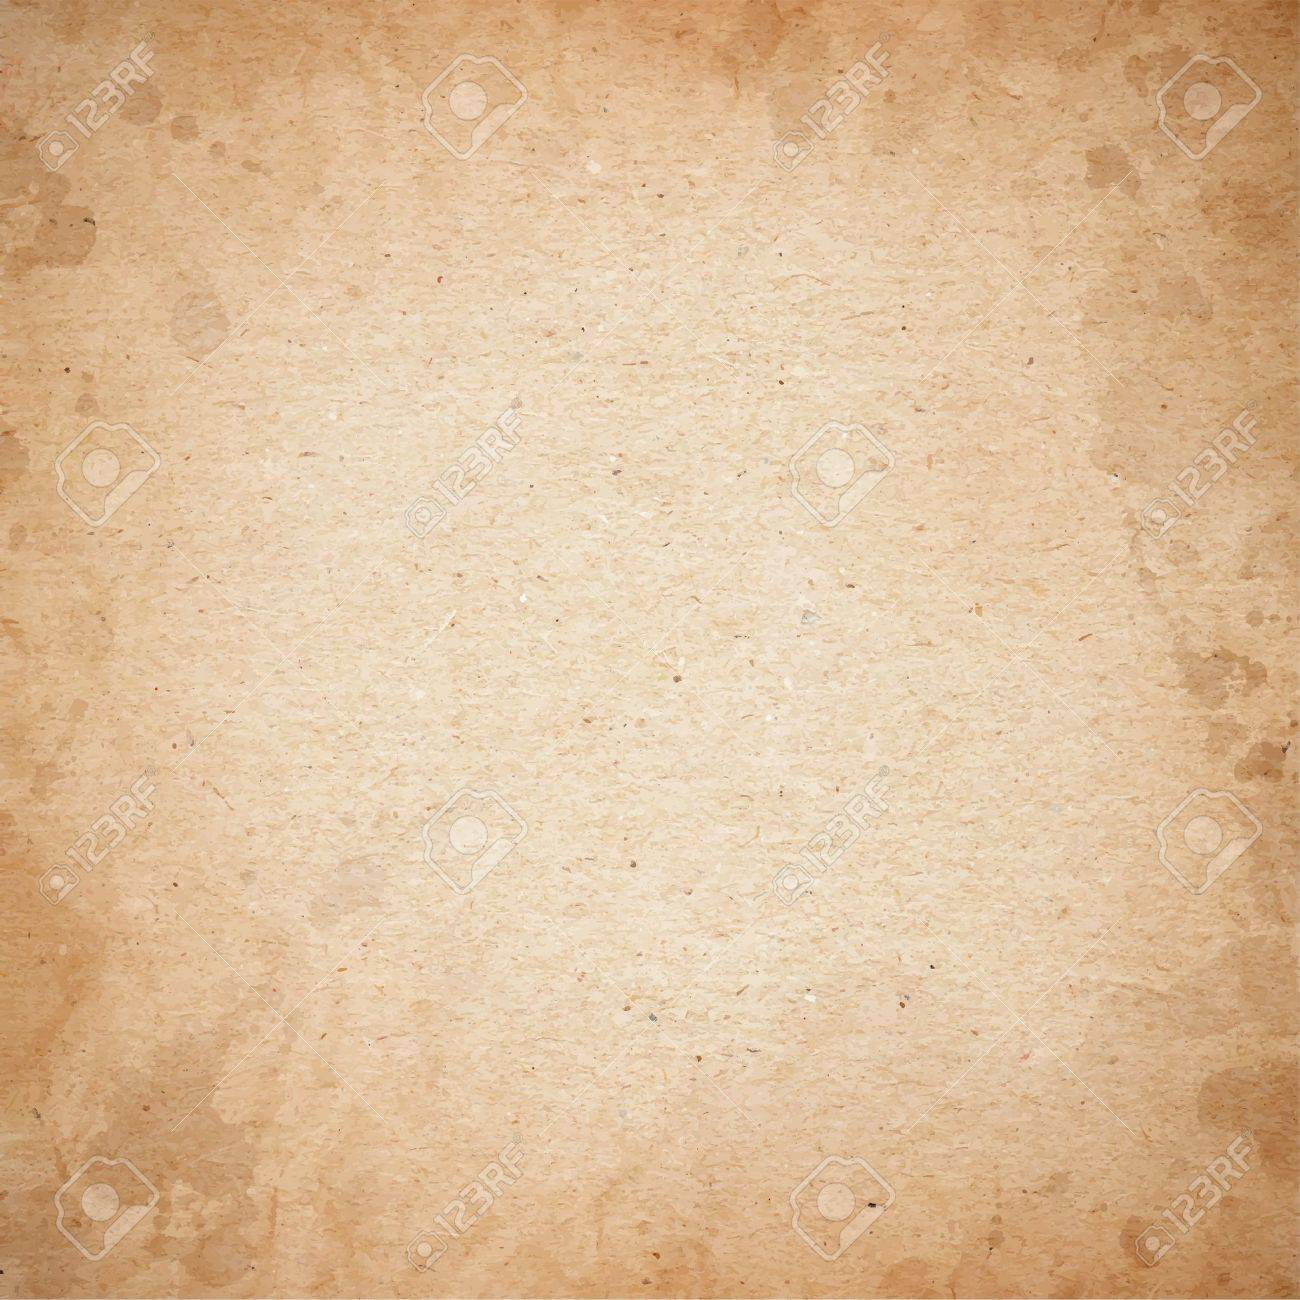 Realistic brown cardboard stained vector texture - 35701987